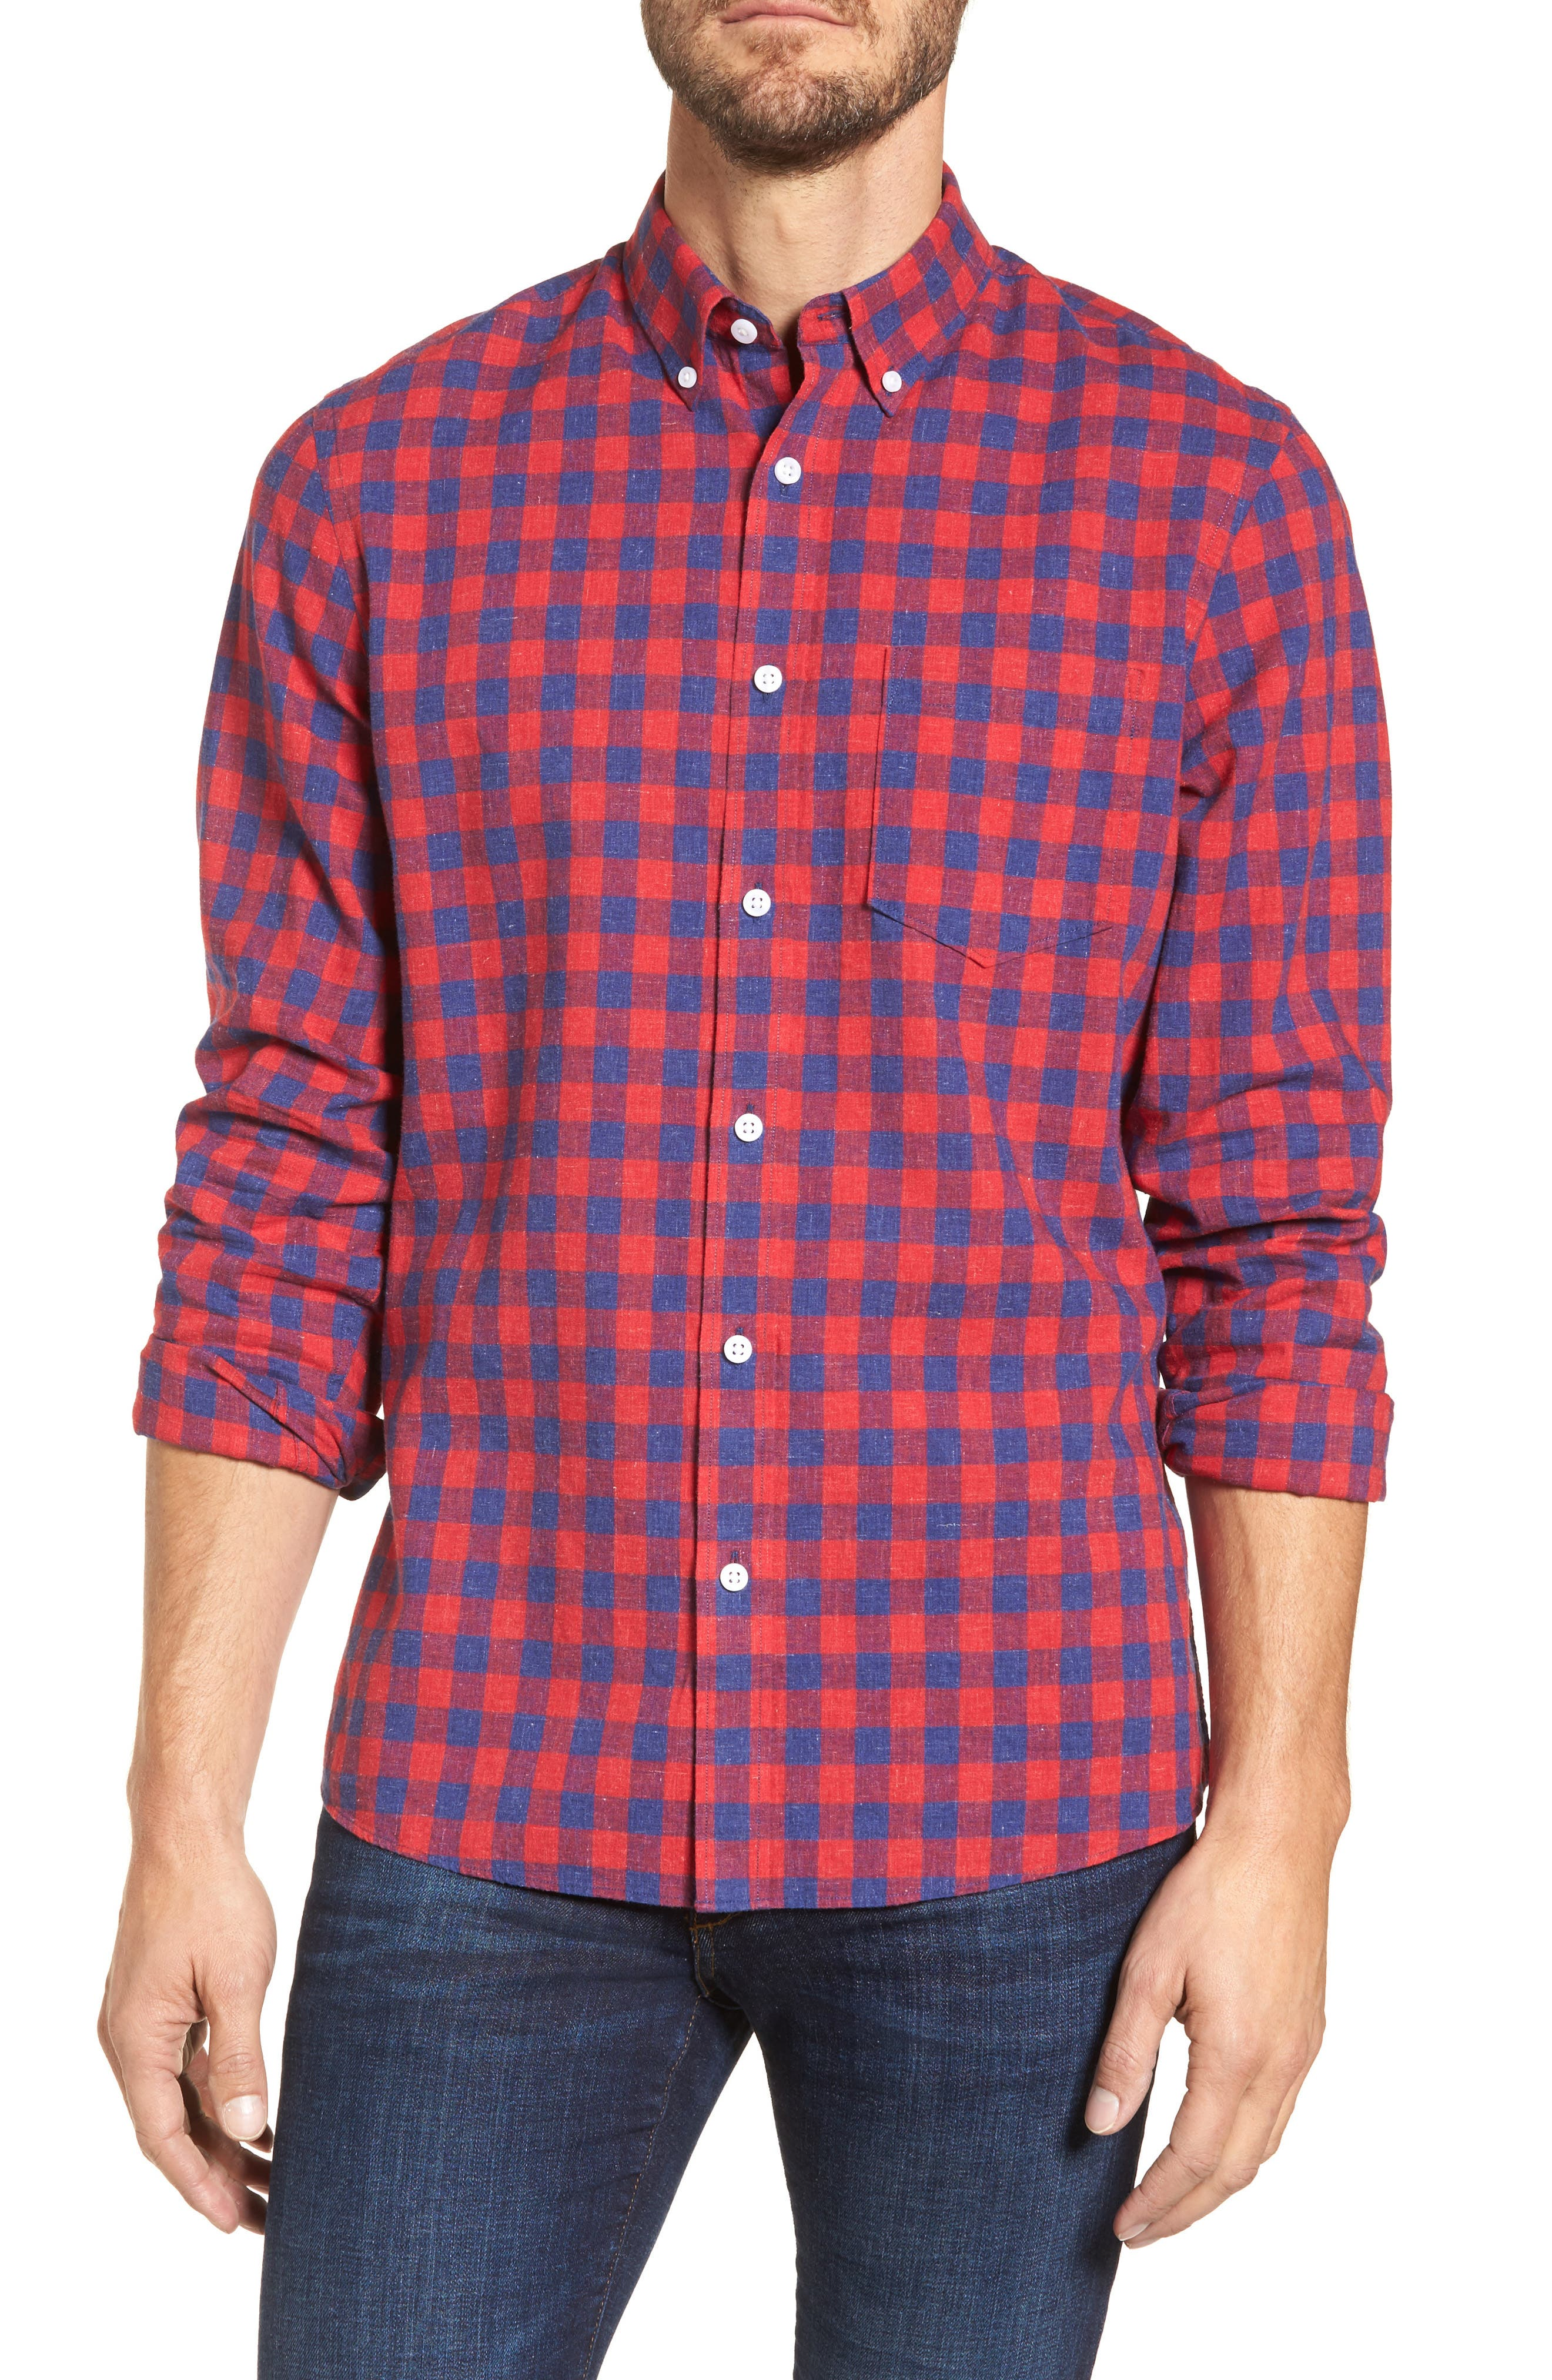 Spade Trim Fit Check Sport Shirt,                             Main thumbnail 1, color,                             Red Chili Blue Check